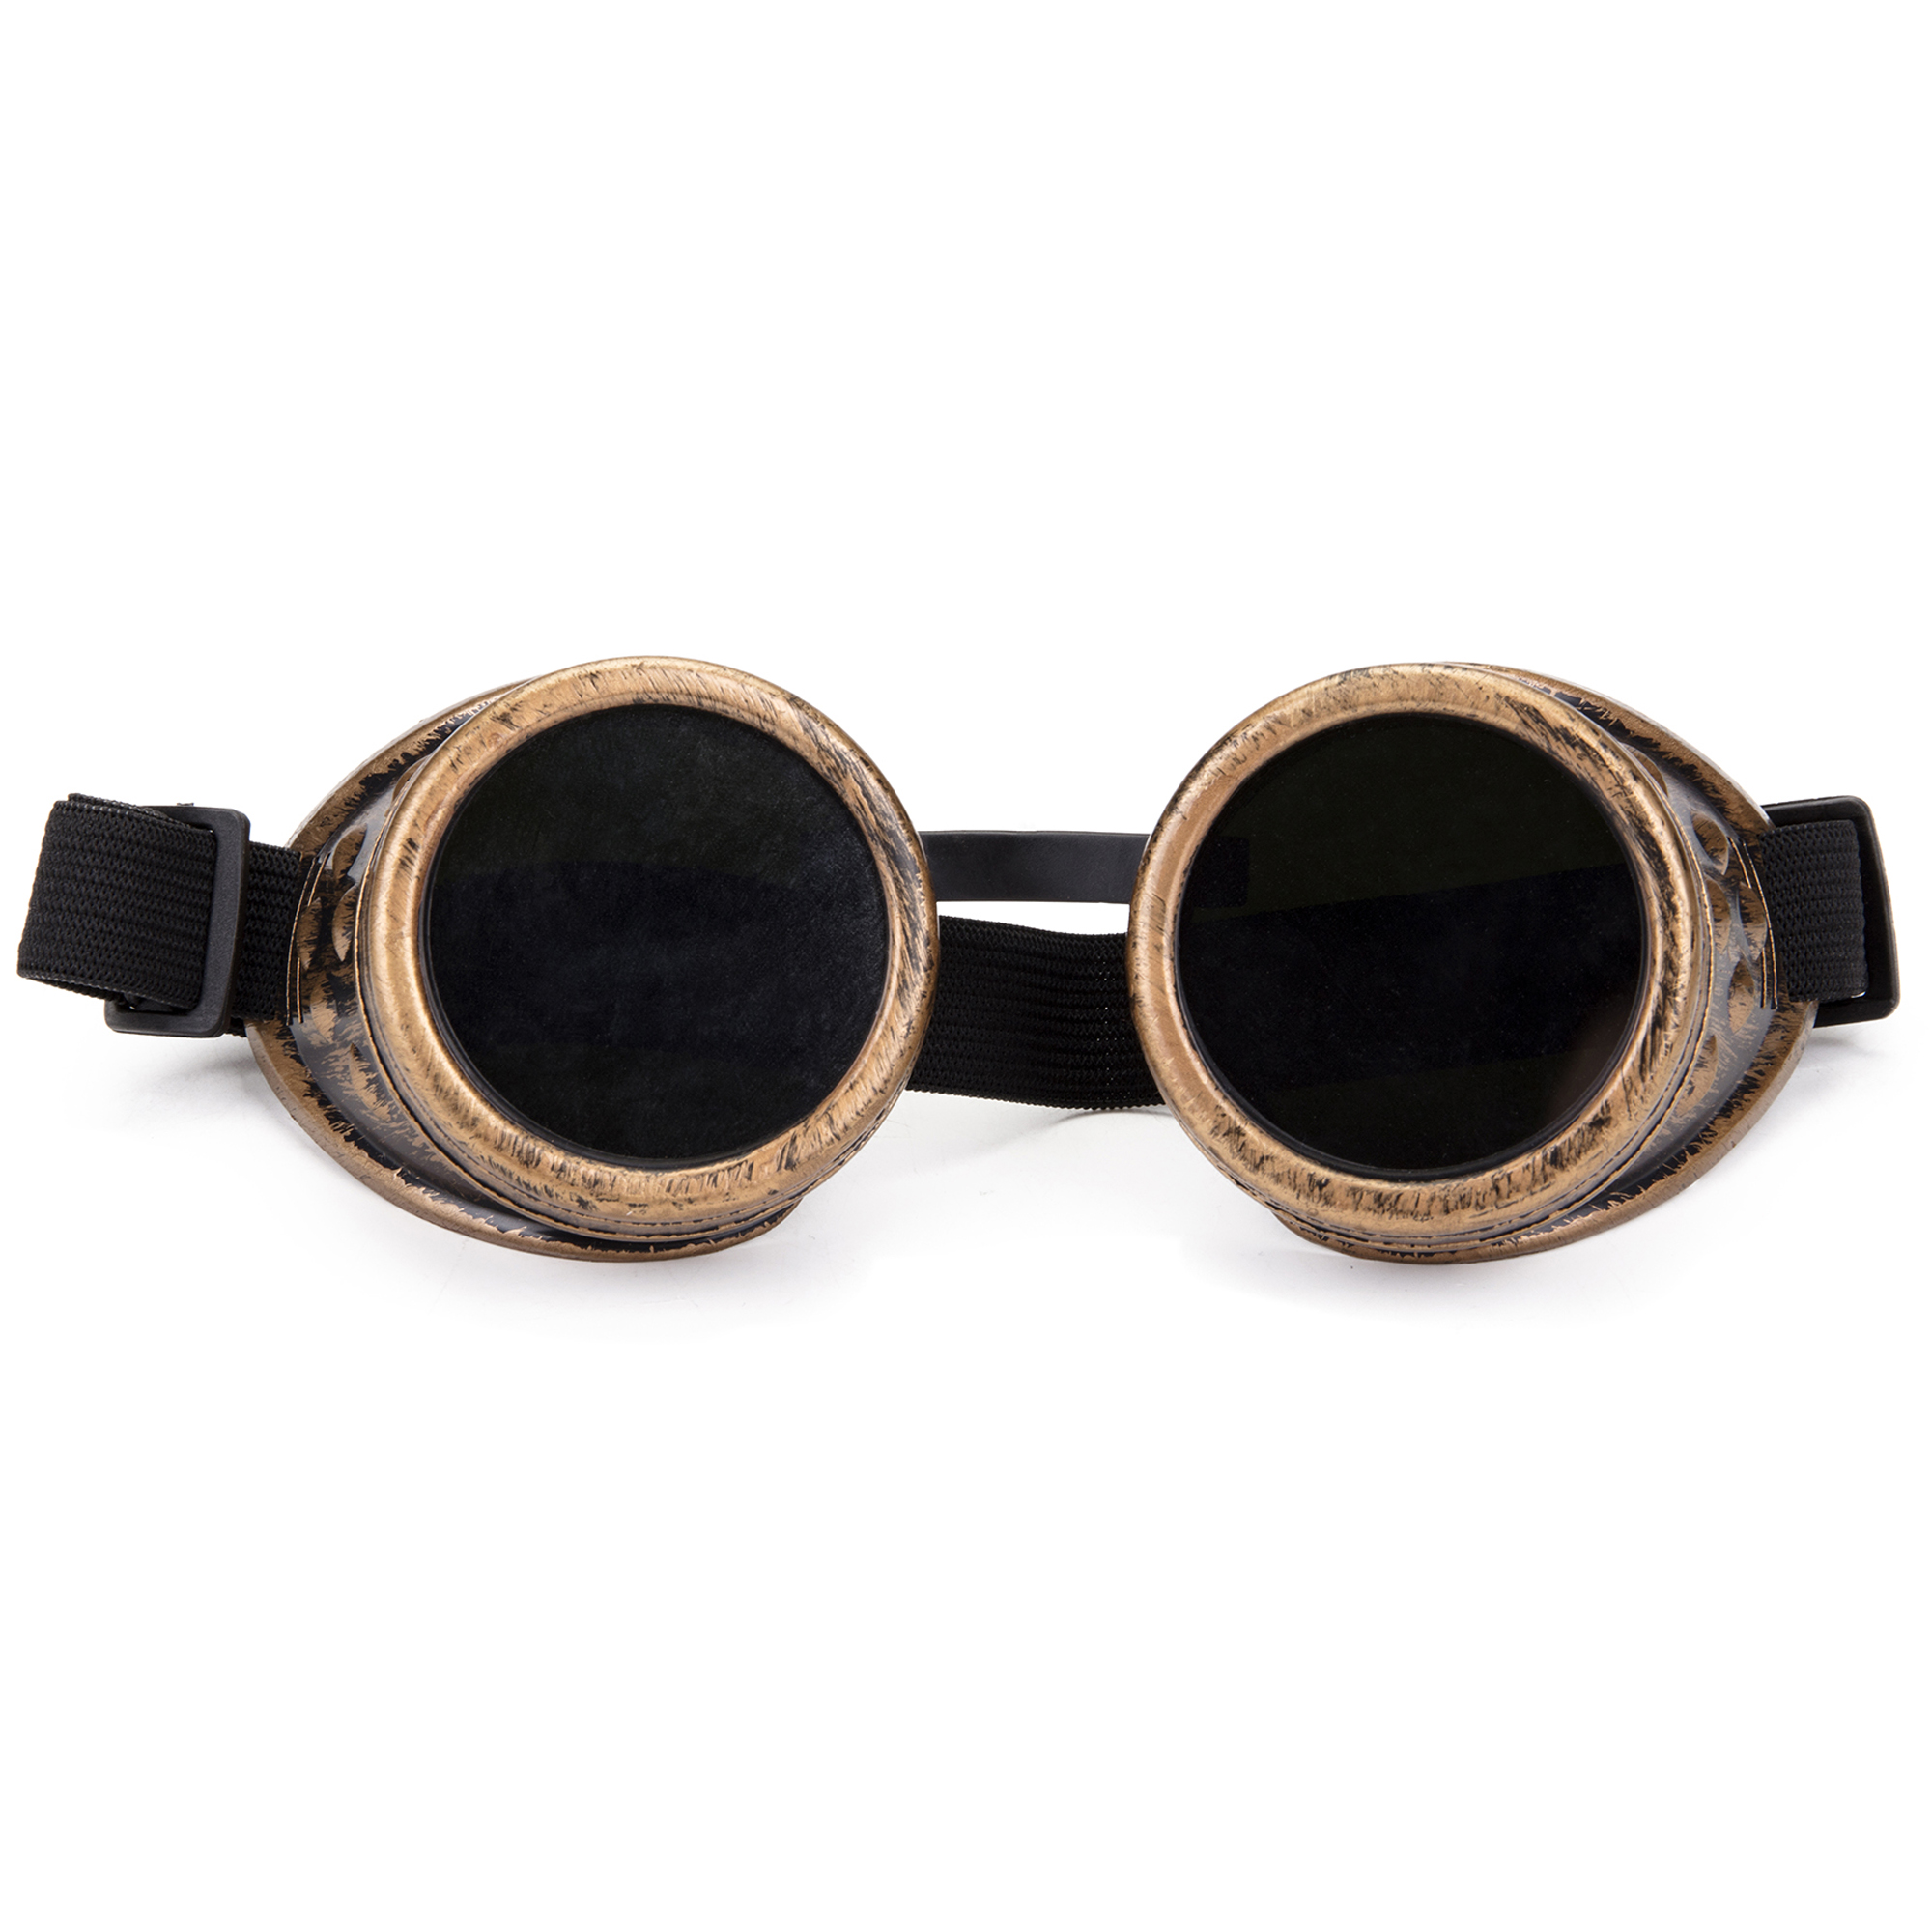 UK New Cosplay Vintage Glasses Victorian Steampunk Goggles Welding Goth Eyewear